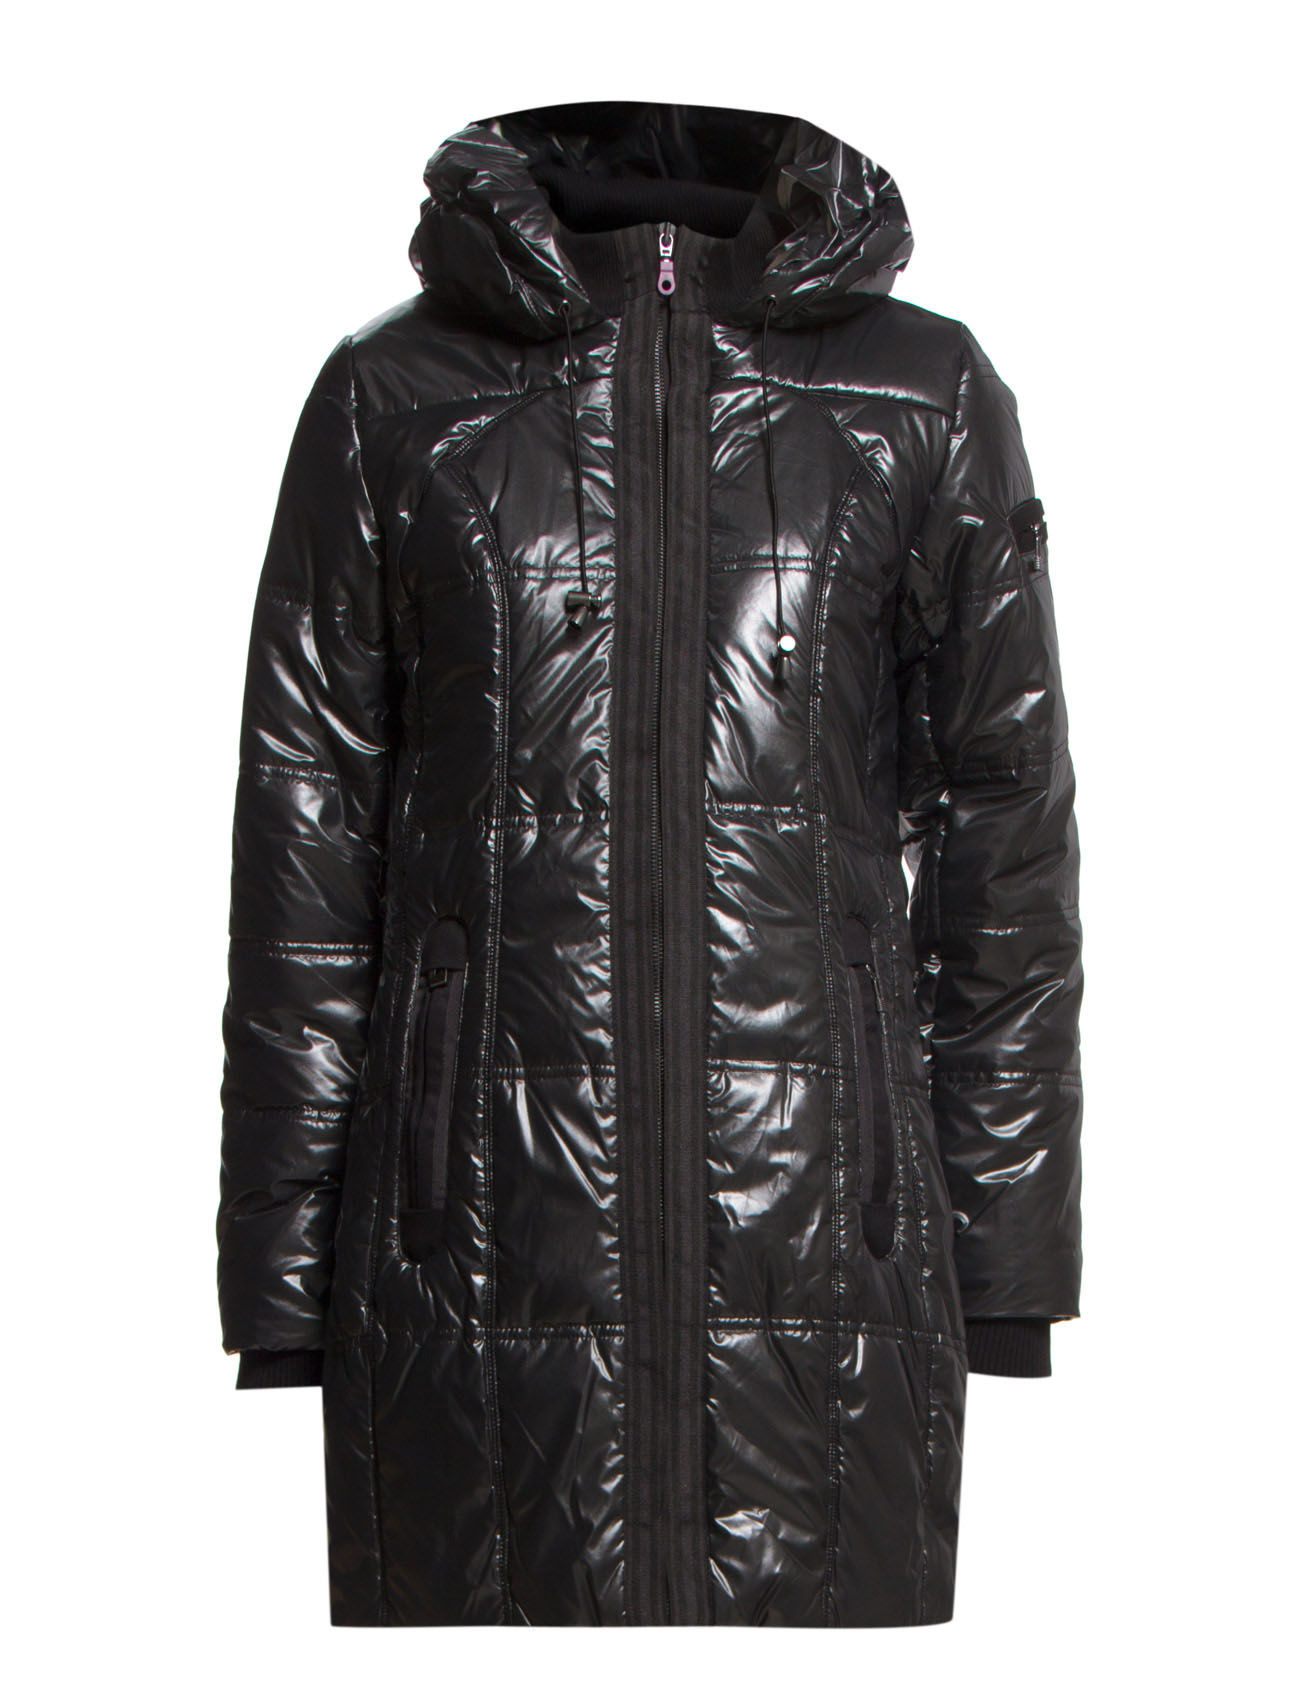 Hashine 1 Padded Coat